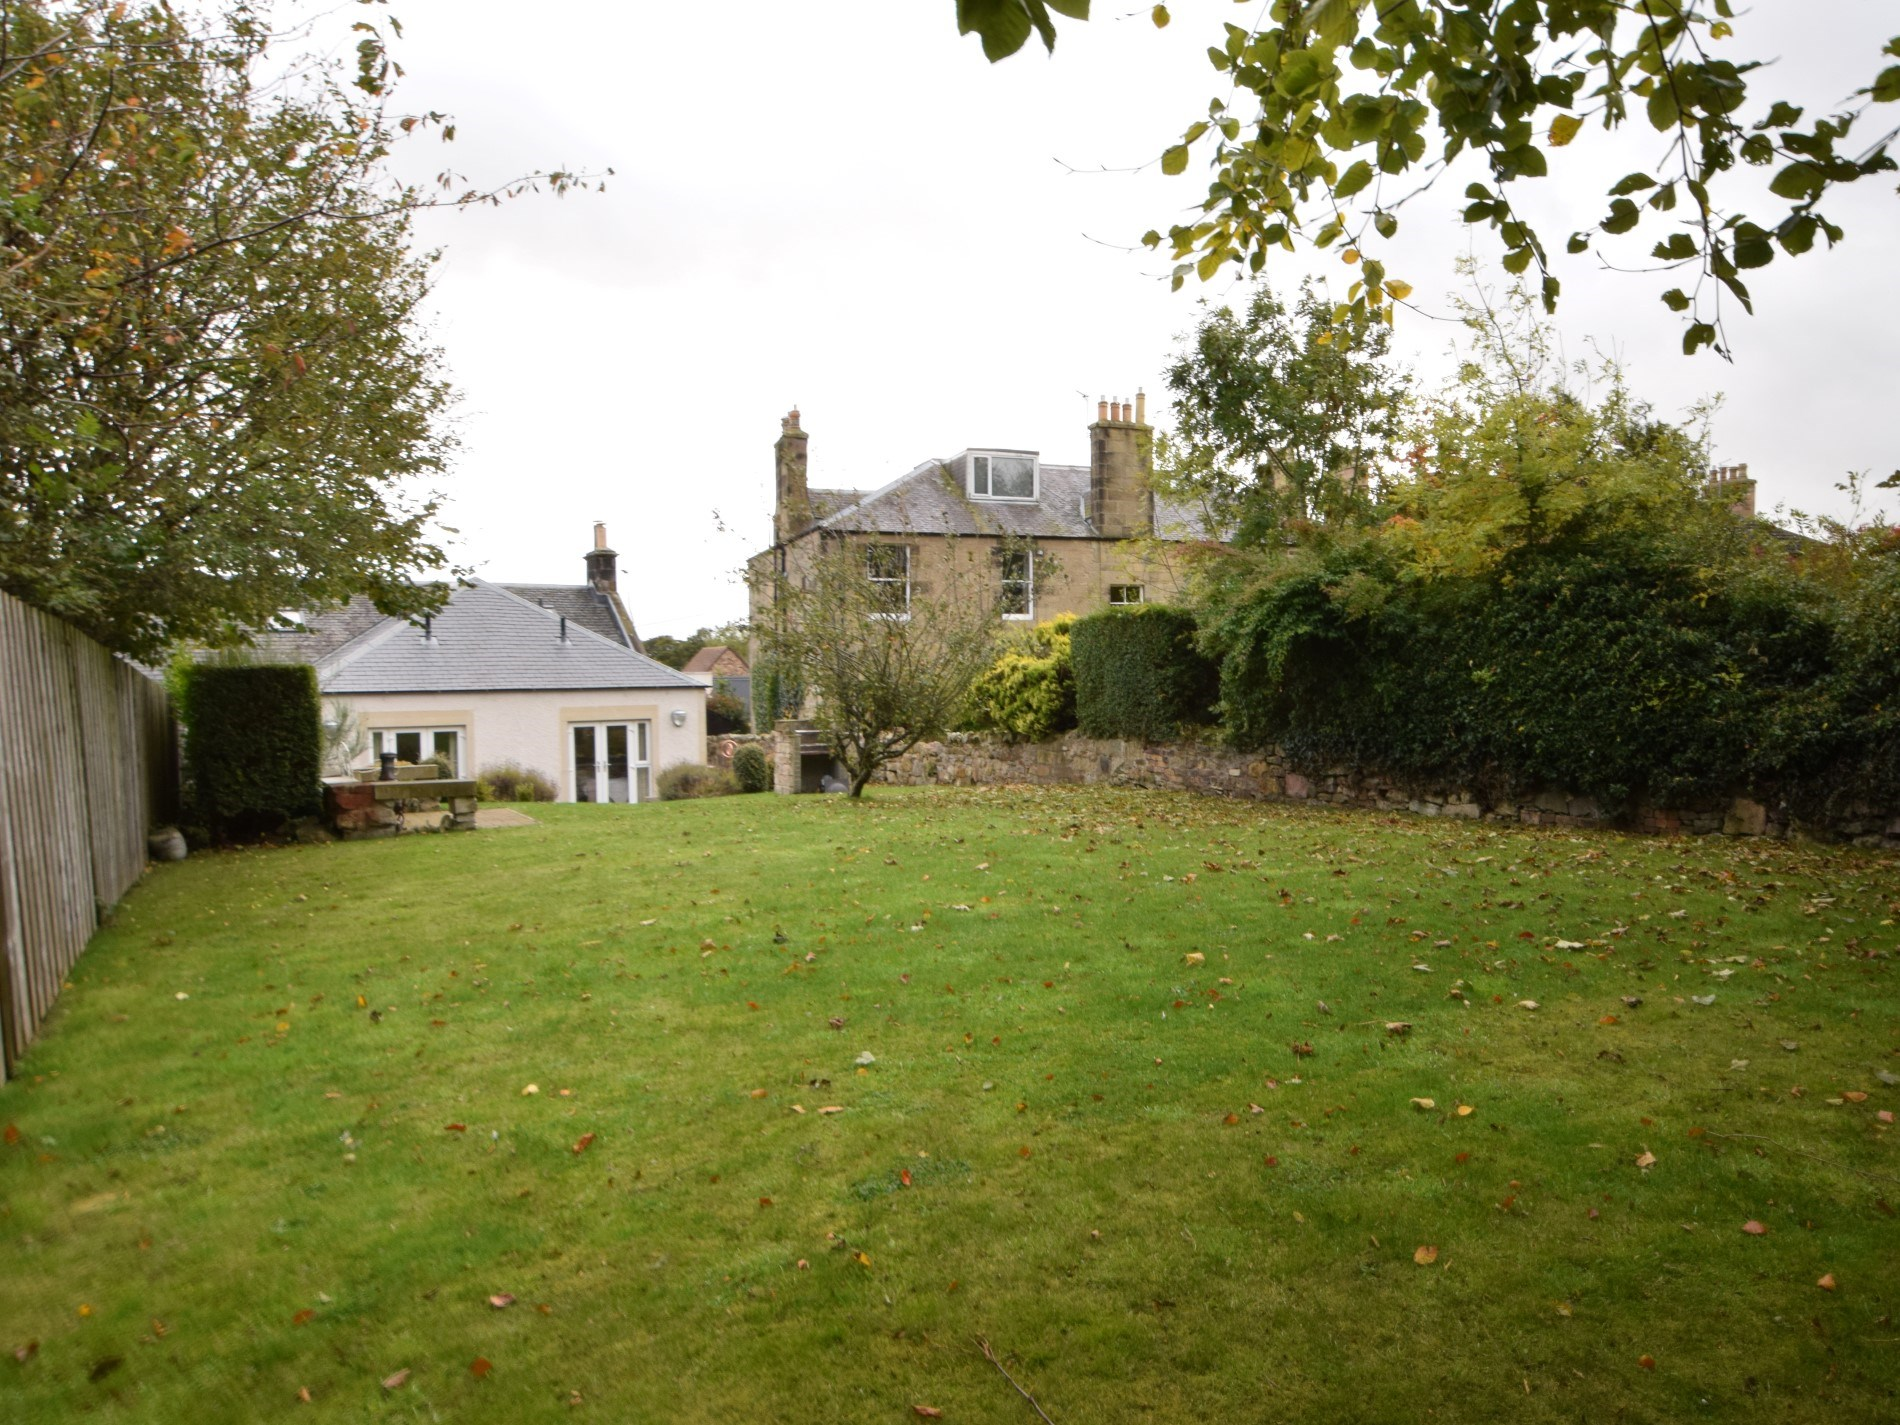 2 Bedroom Cottage in Roslin, Perthshire, Angus & Fife